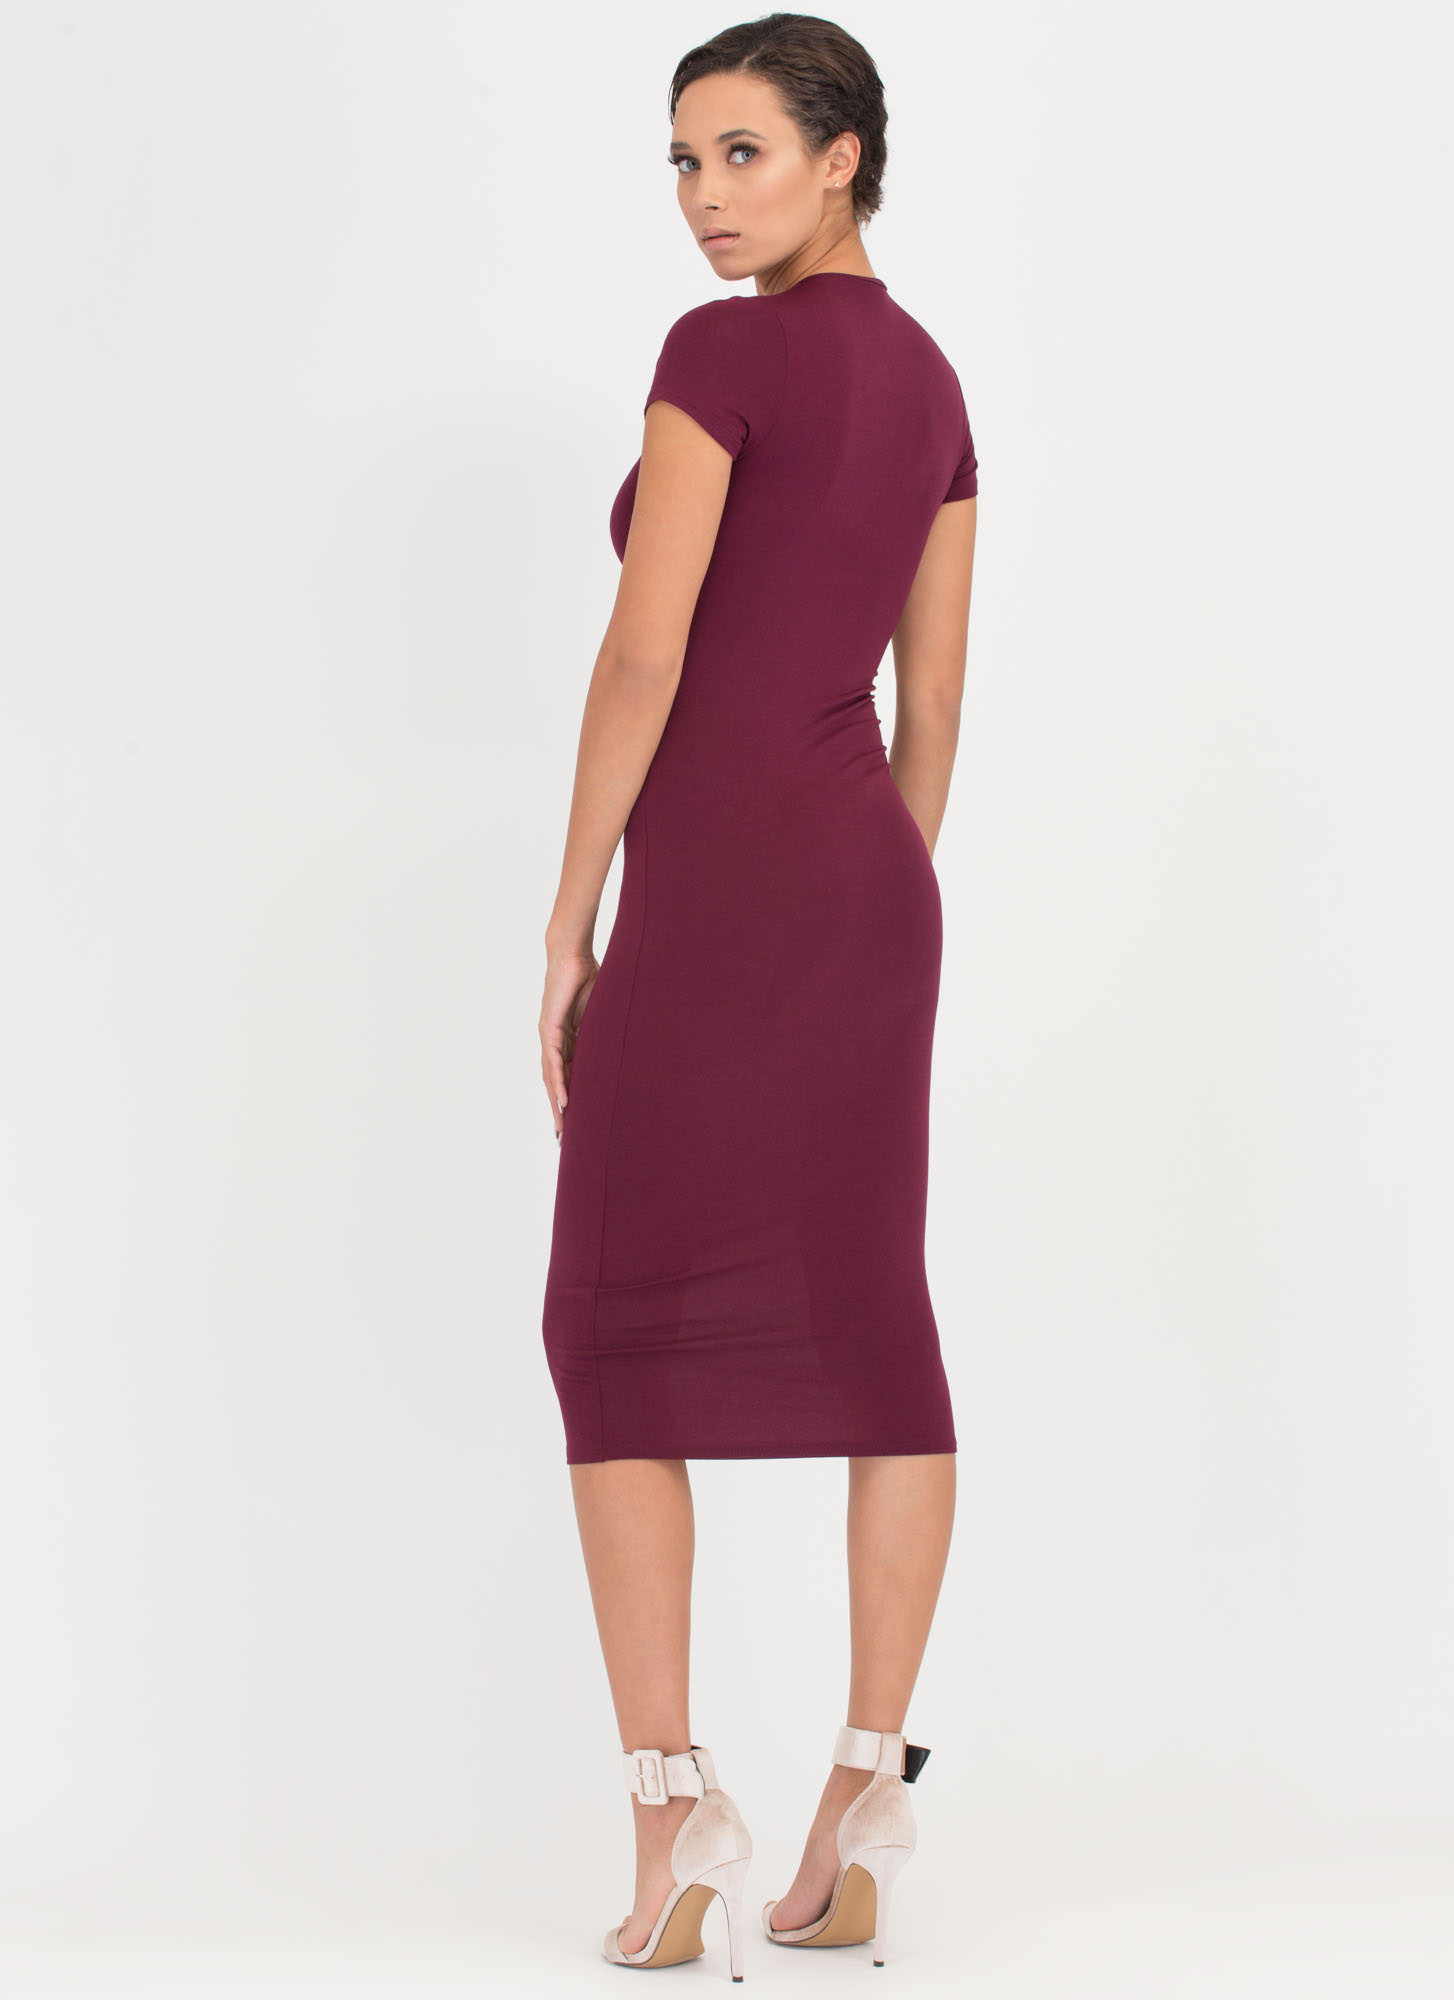 Heartbreaker Babe Bodycon Dress BURGUNDY